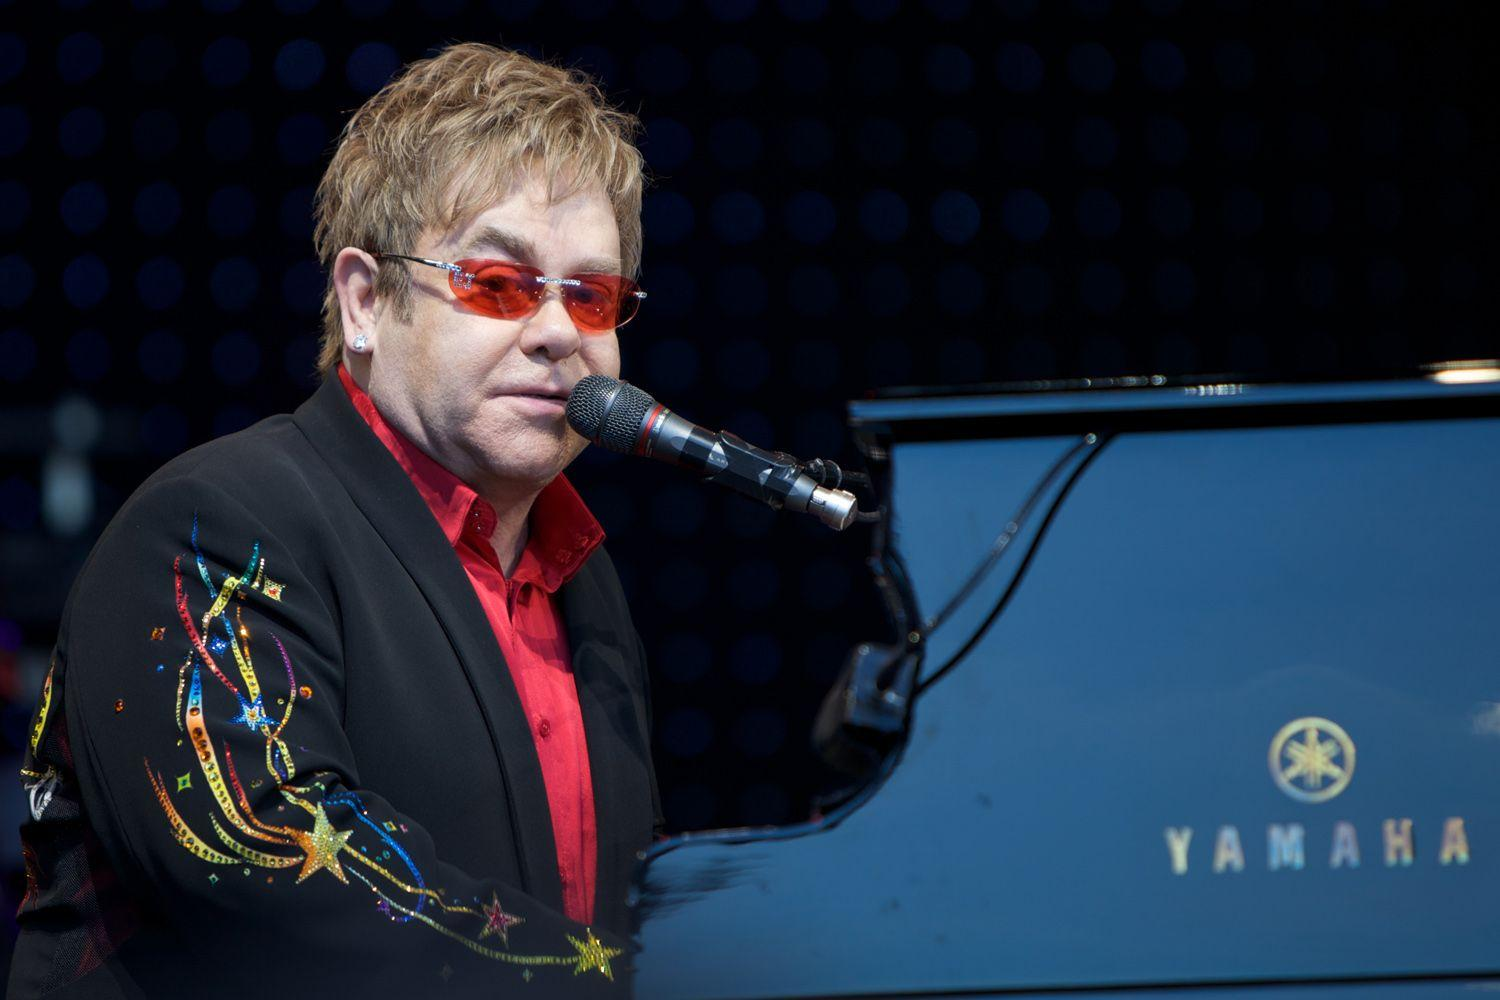 Elton John Wallpapers Pictures 60607 1500x1000 px ~ HDWallSource